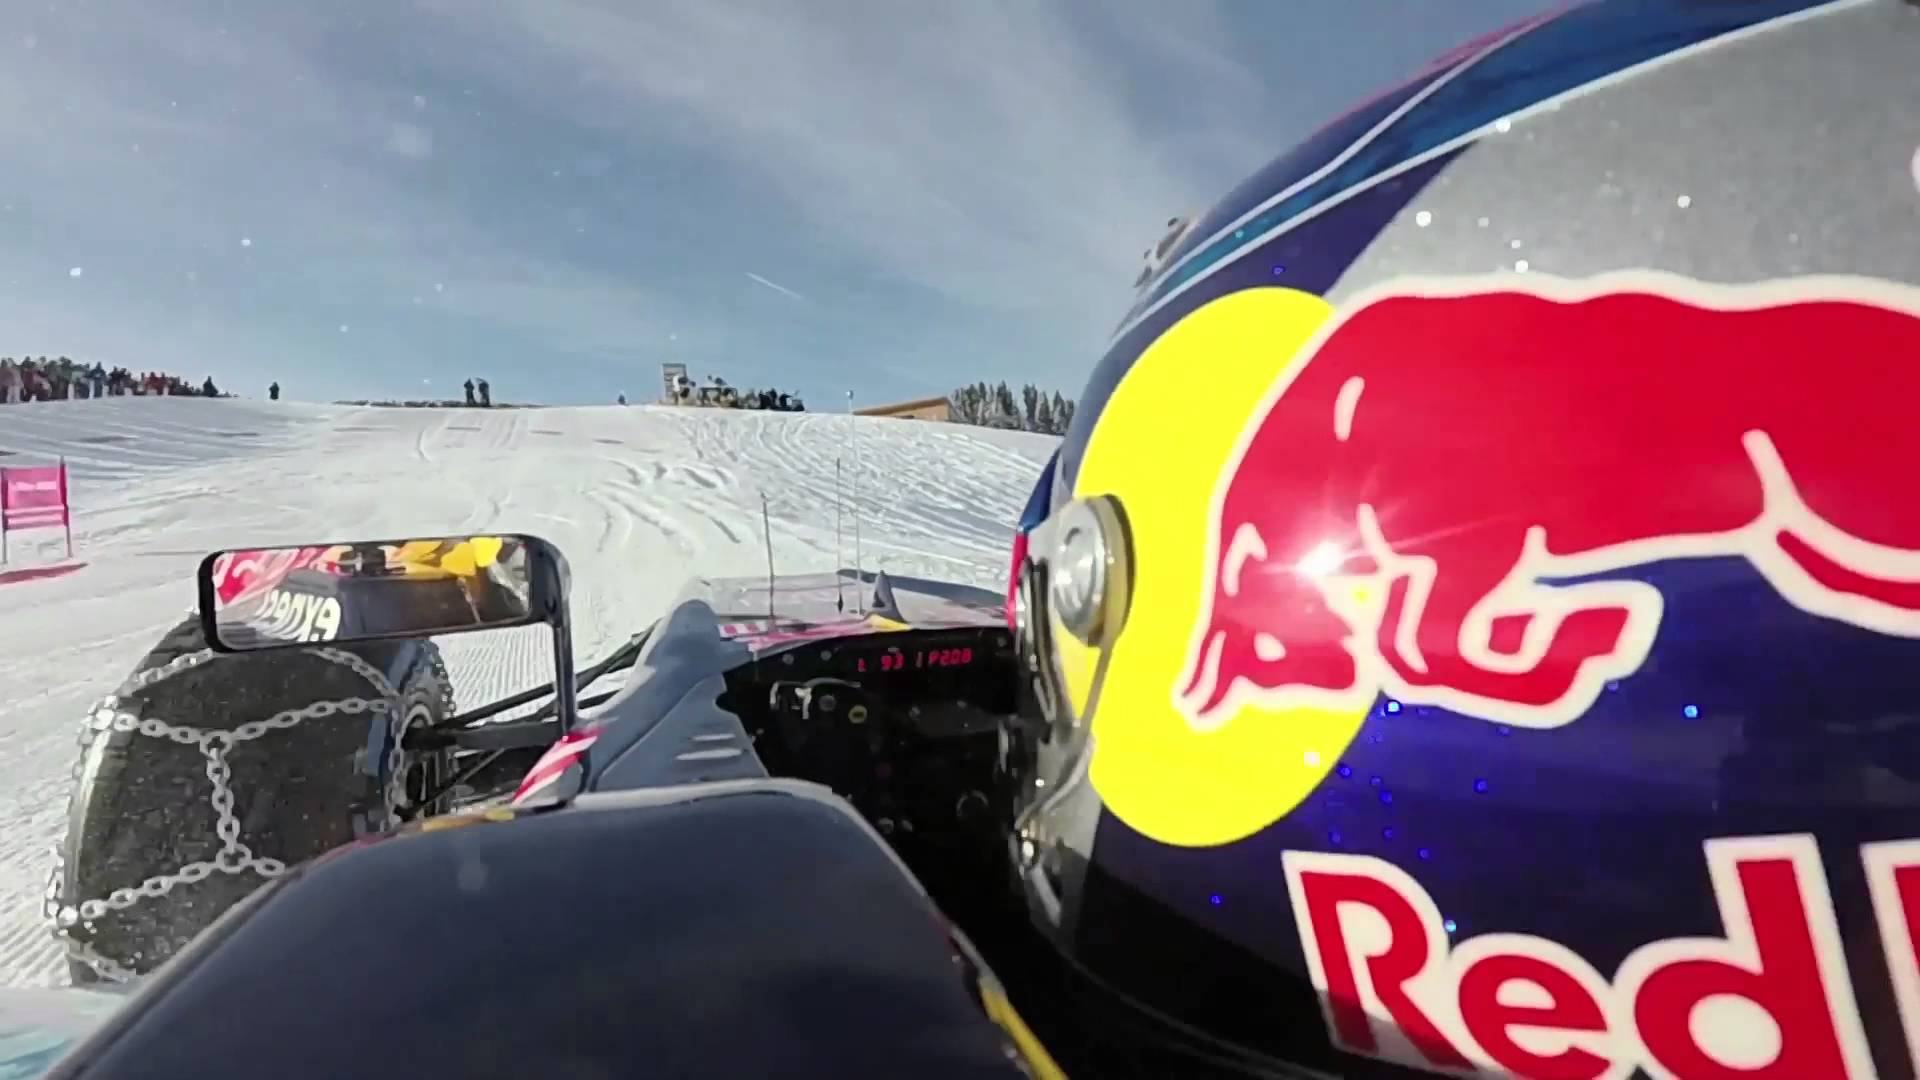 Red Bull Released A Formula 1 Car On Ski Slope And Pushed The Boundaries Of Fun